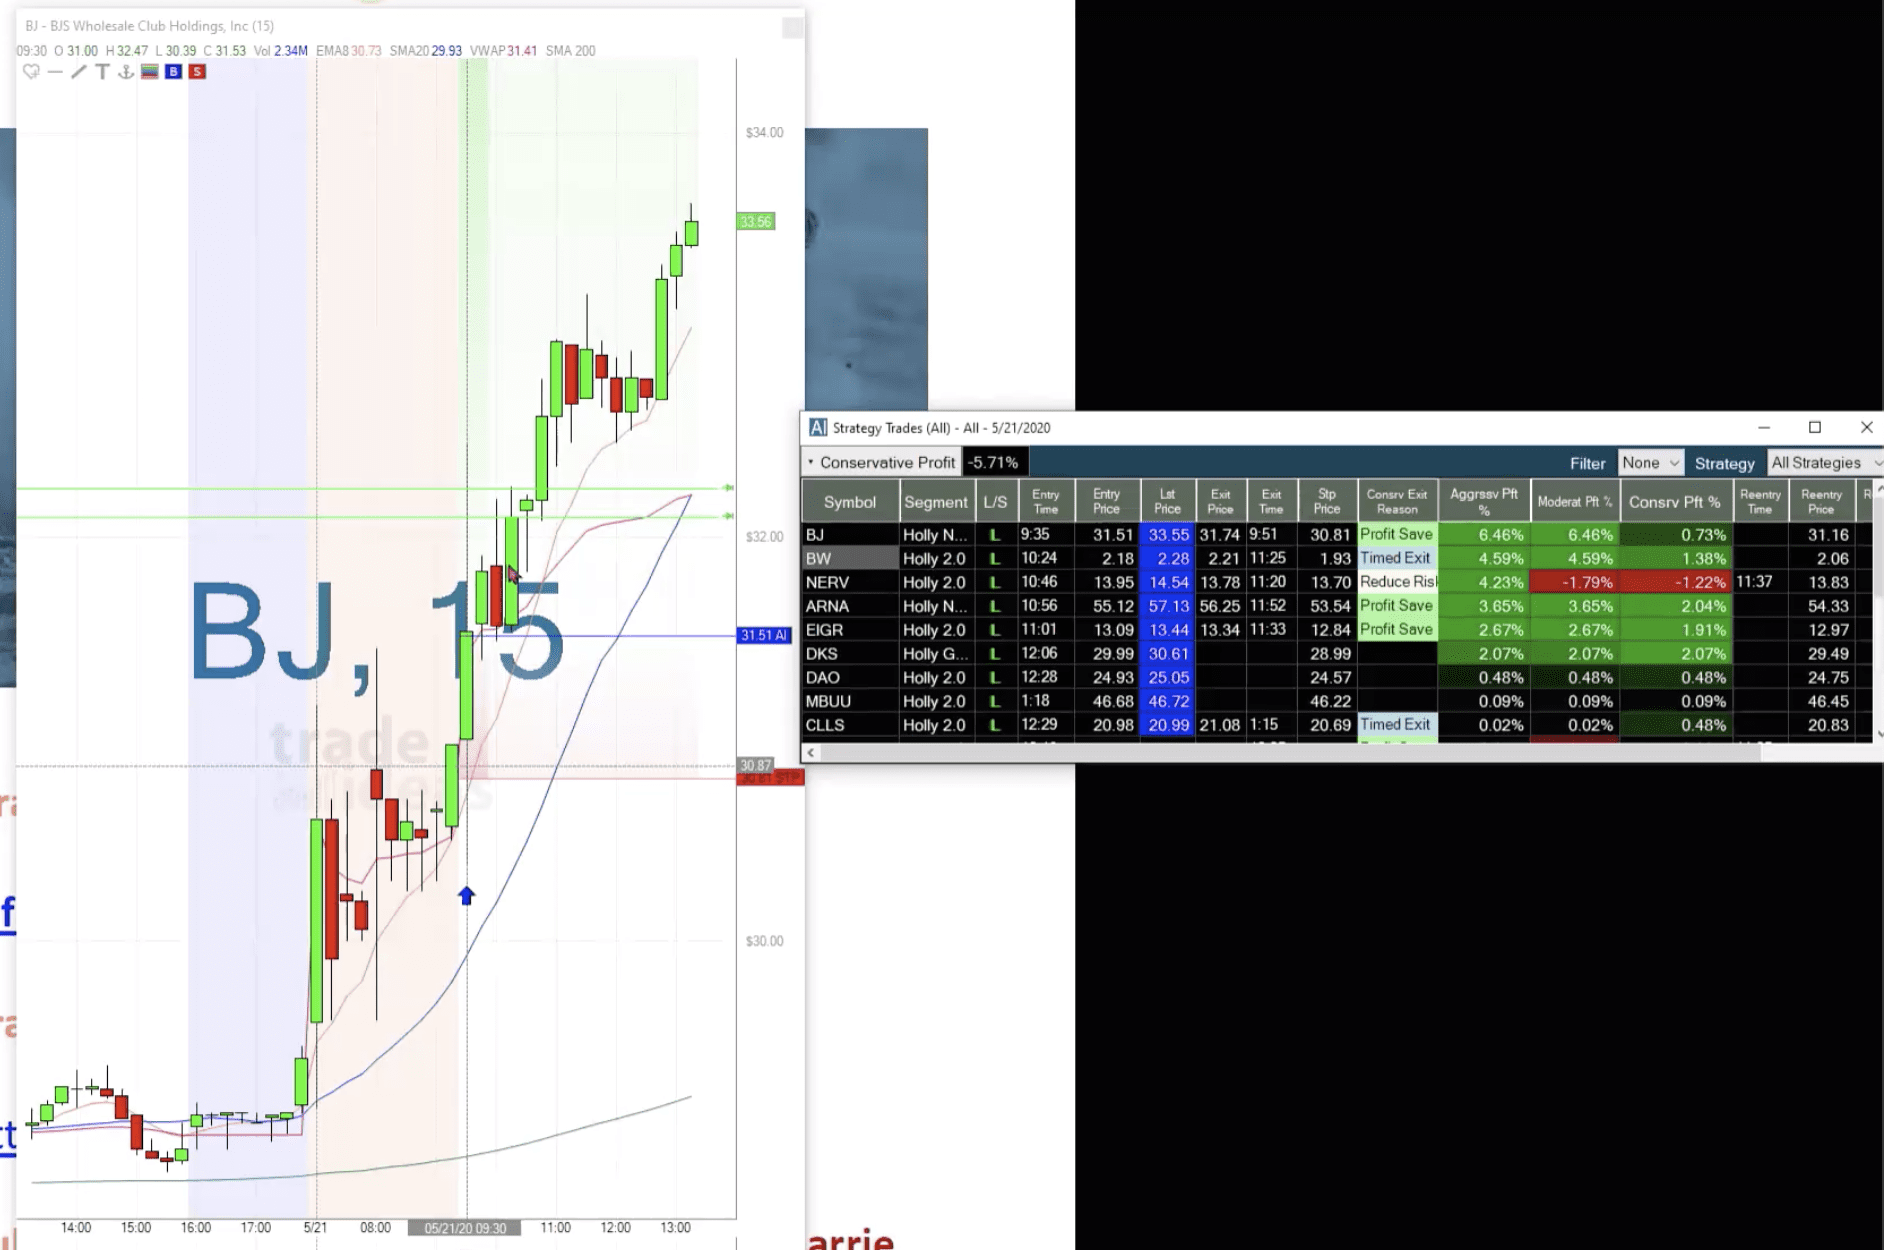 Trade Ideas Live Trading Room Recap Thursday May 21, 2020